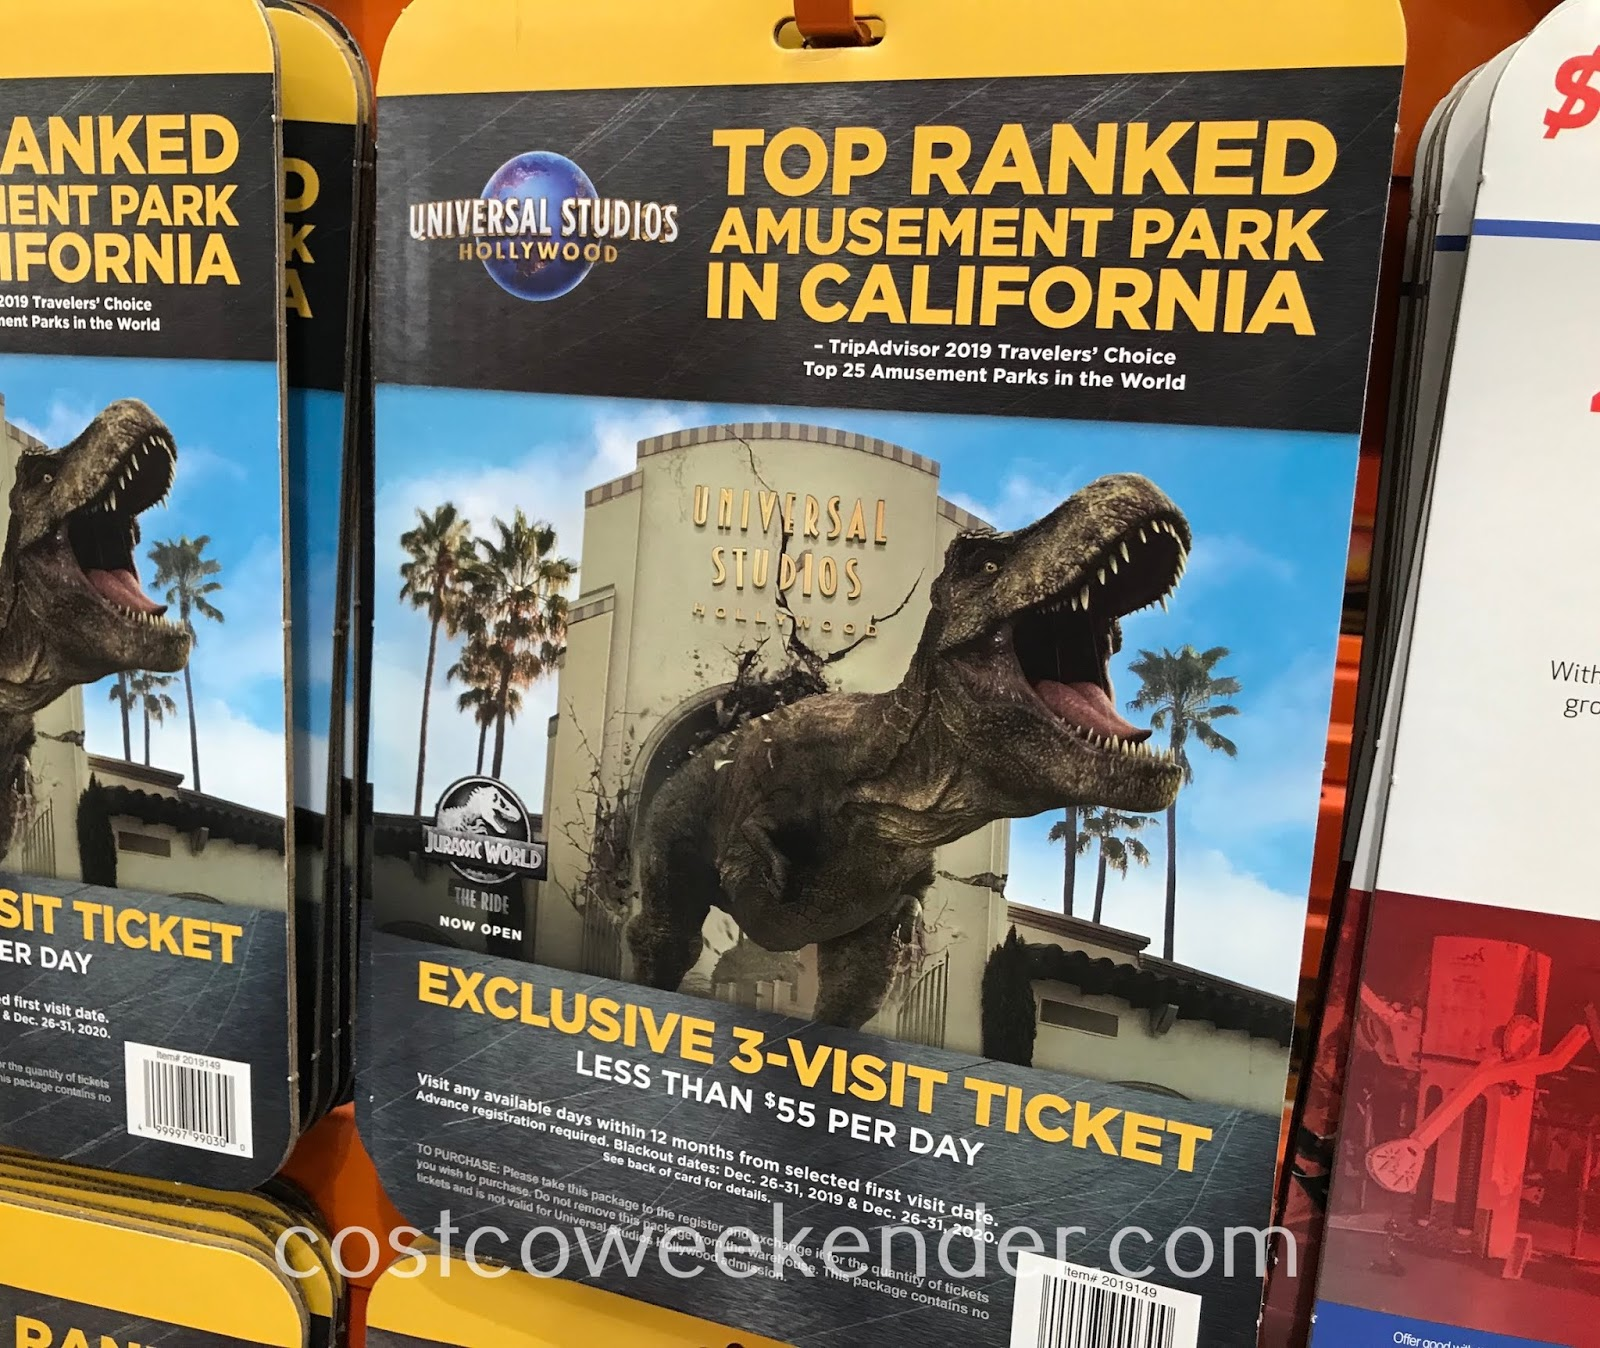 Enjoy movies and rides at Universal Studios Hollywood